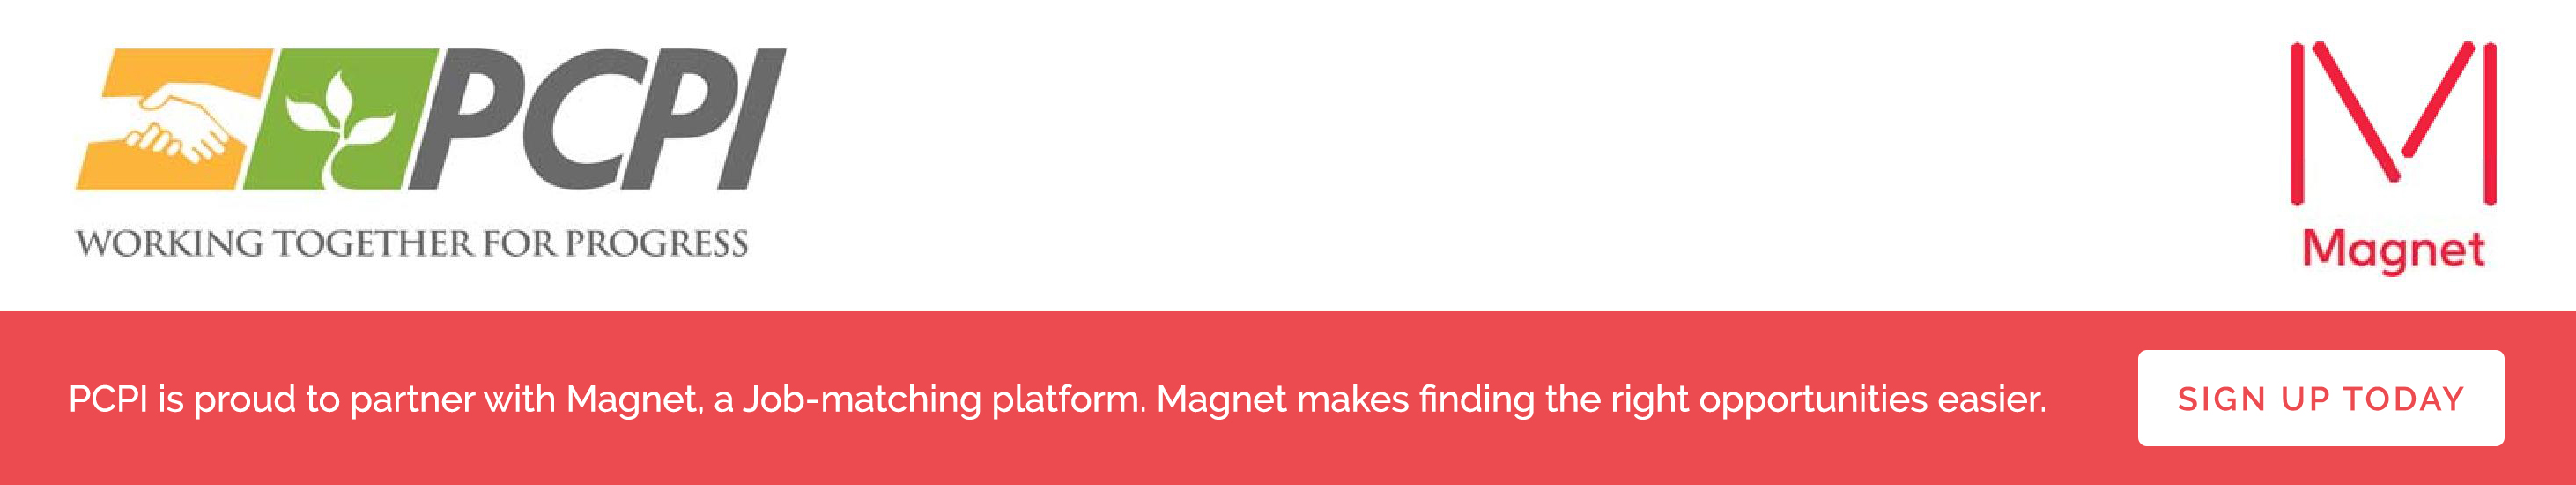 PCPI is proud to be a partner with Magnet, a job-matching platform. Magnet makes finding the right opportunities easier.